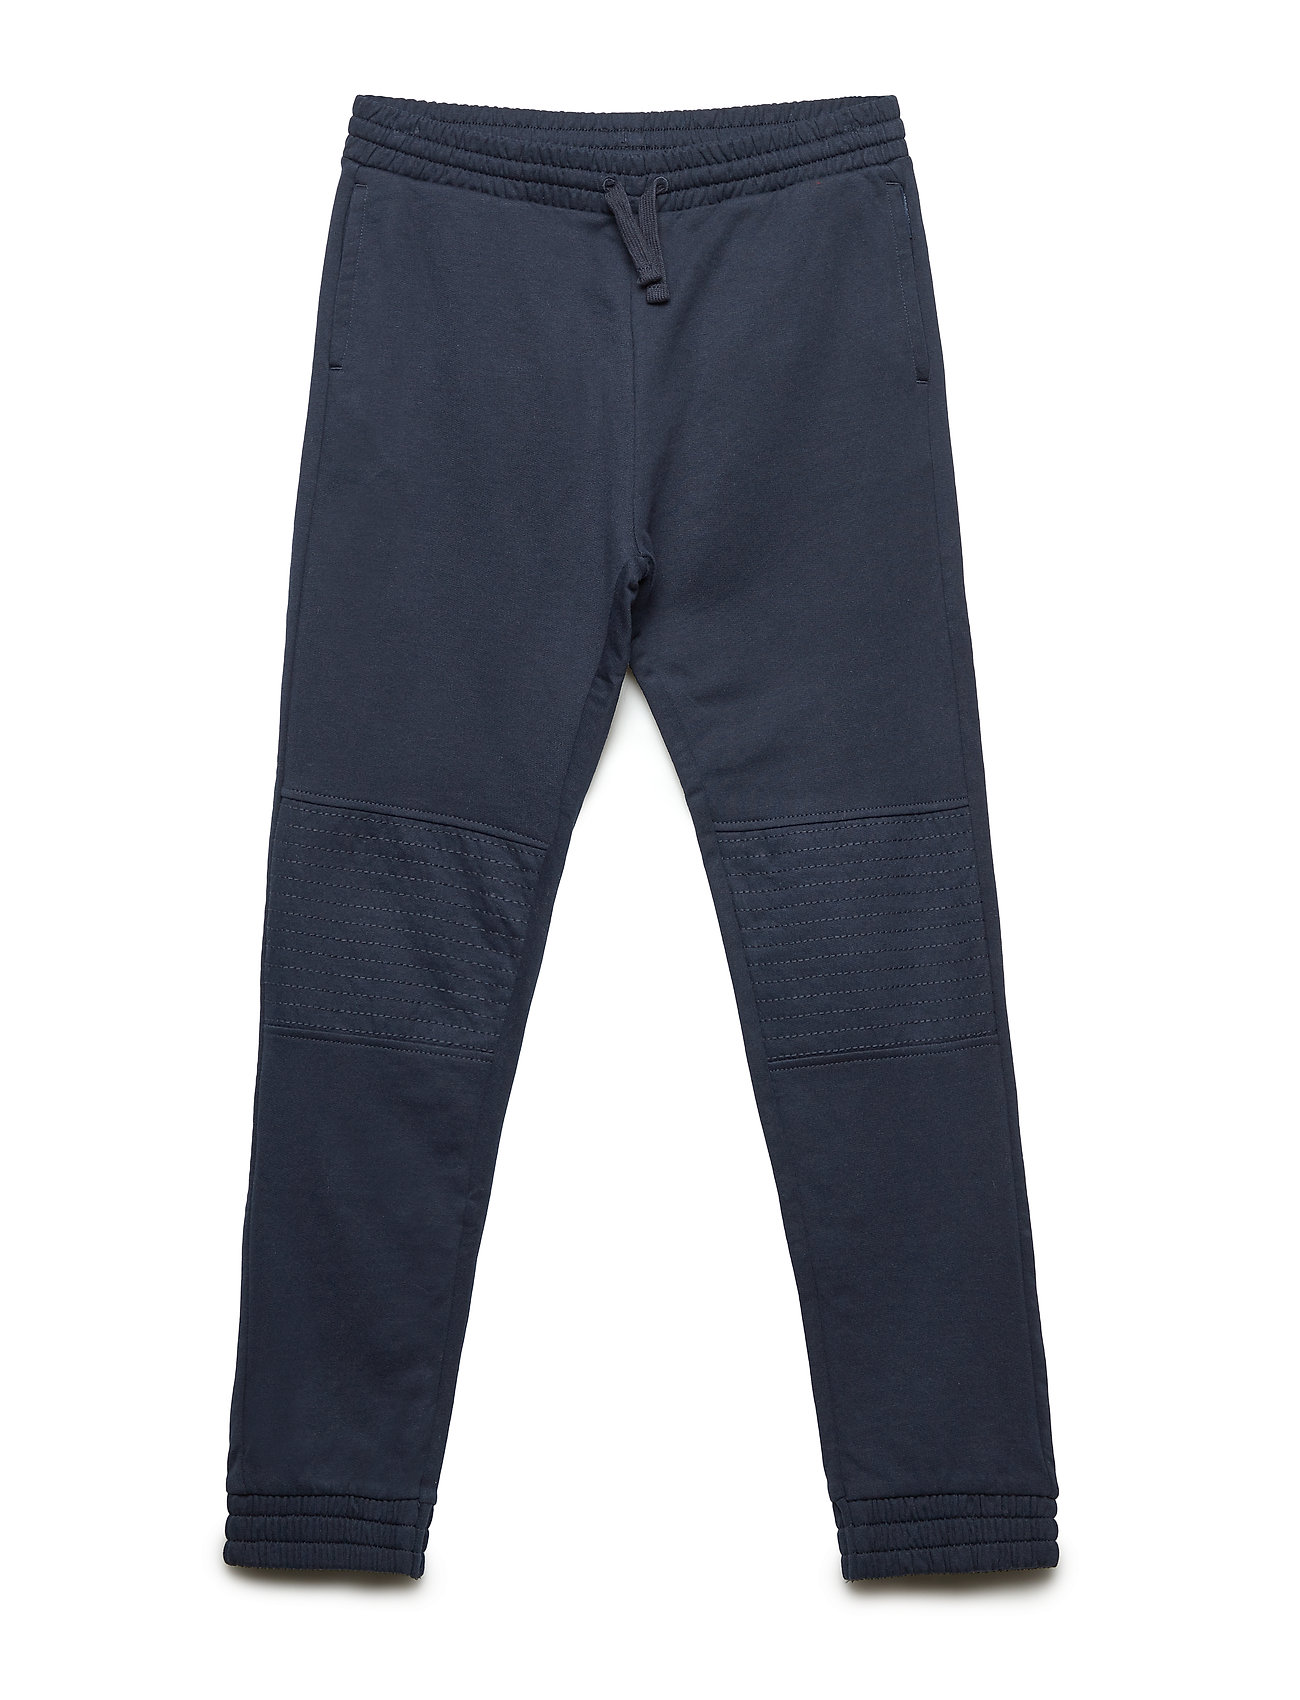 Polarn O. Pyret Trouser Jersey Solid School